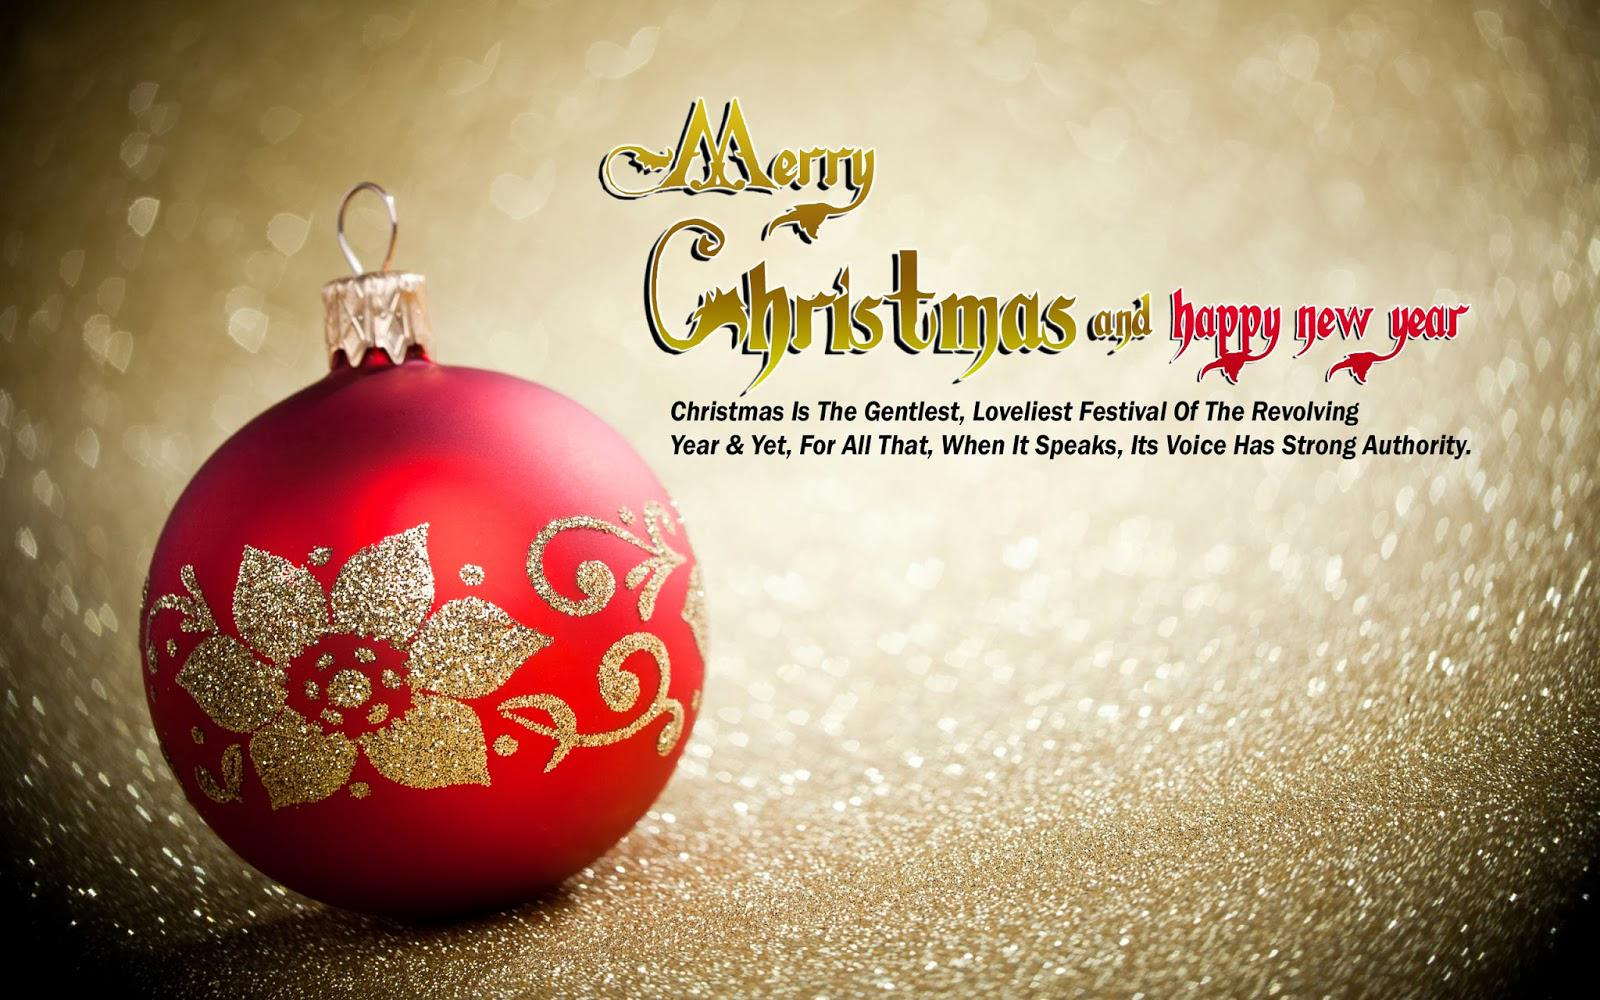 Merry-Christmas-and-Happy-New-Year-Wallpaper-2016